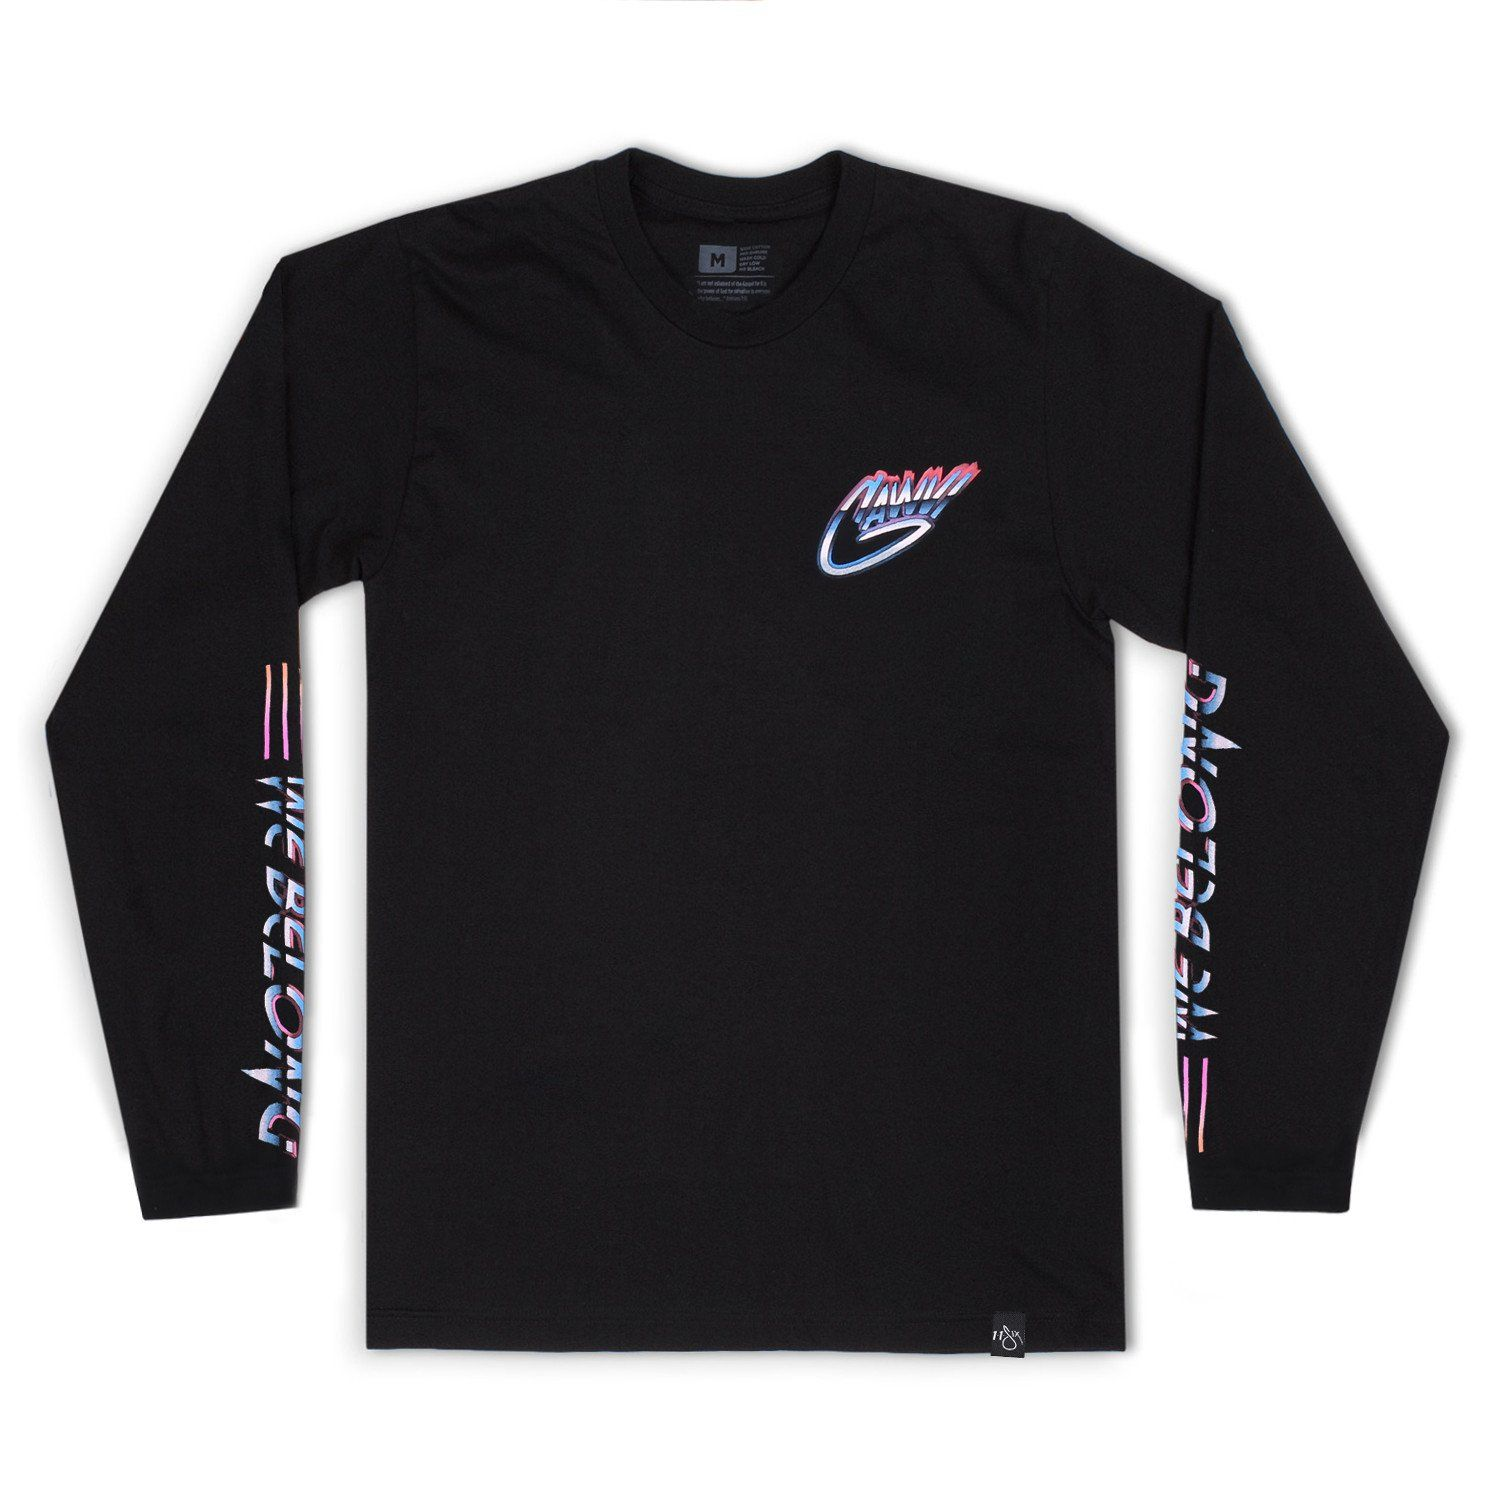 Gawvi 'We Belong' Long Sleeve T-Shirt